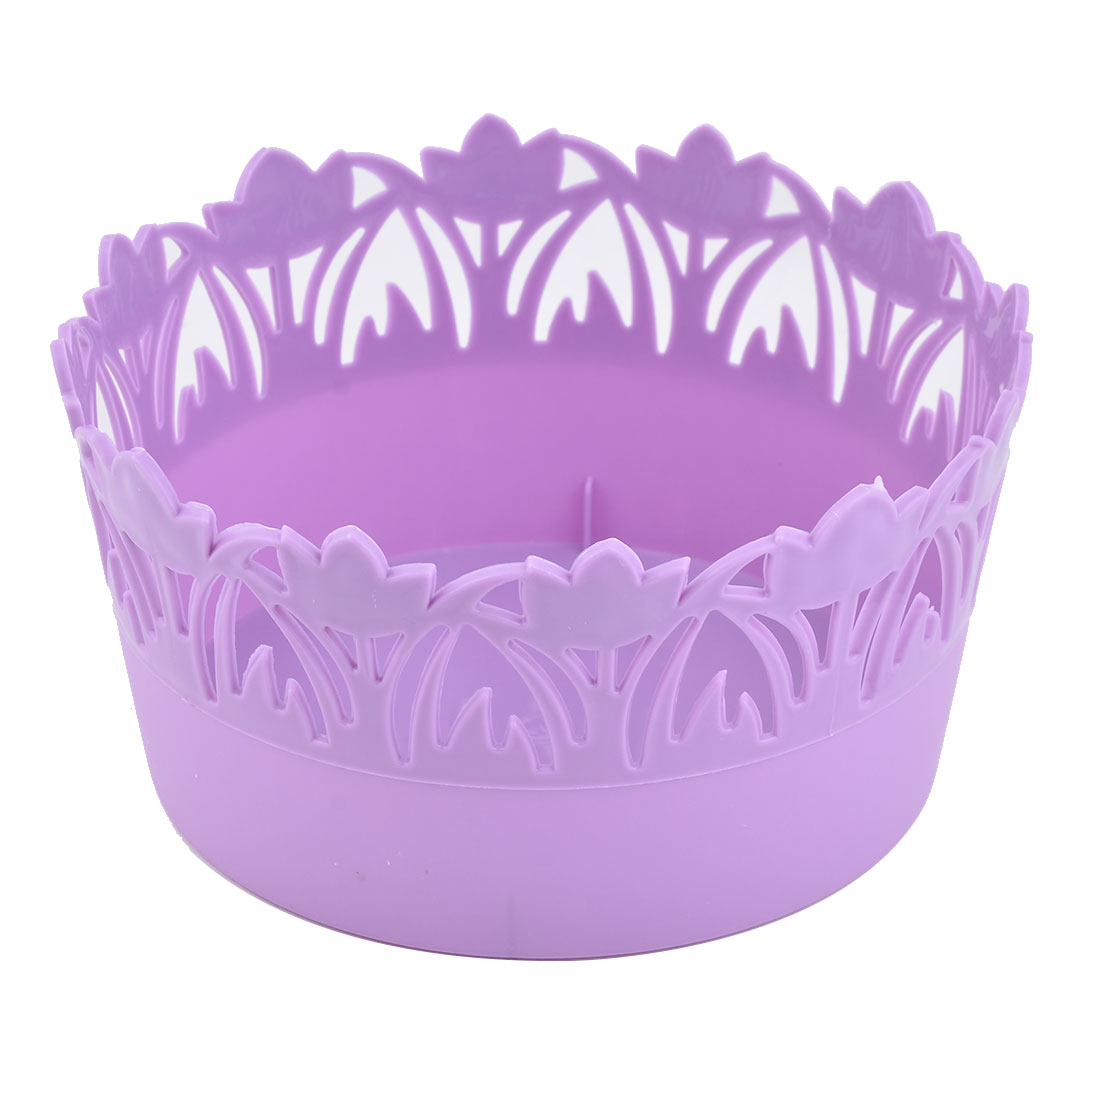 Home Plastic Flower Design Hollow Out Holder Storage Basket Box Container Purple